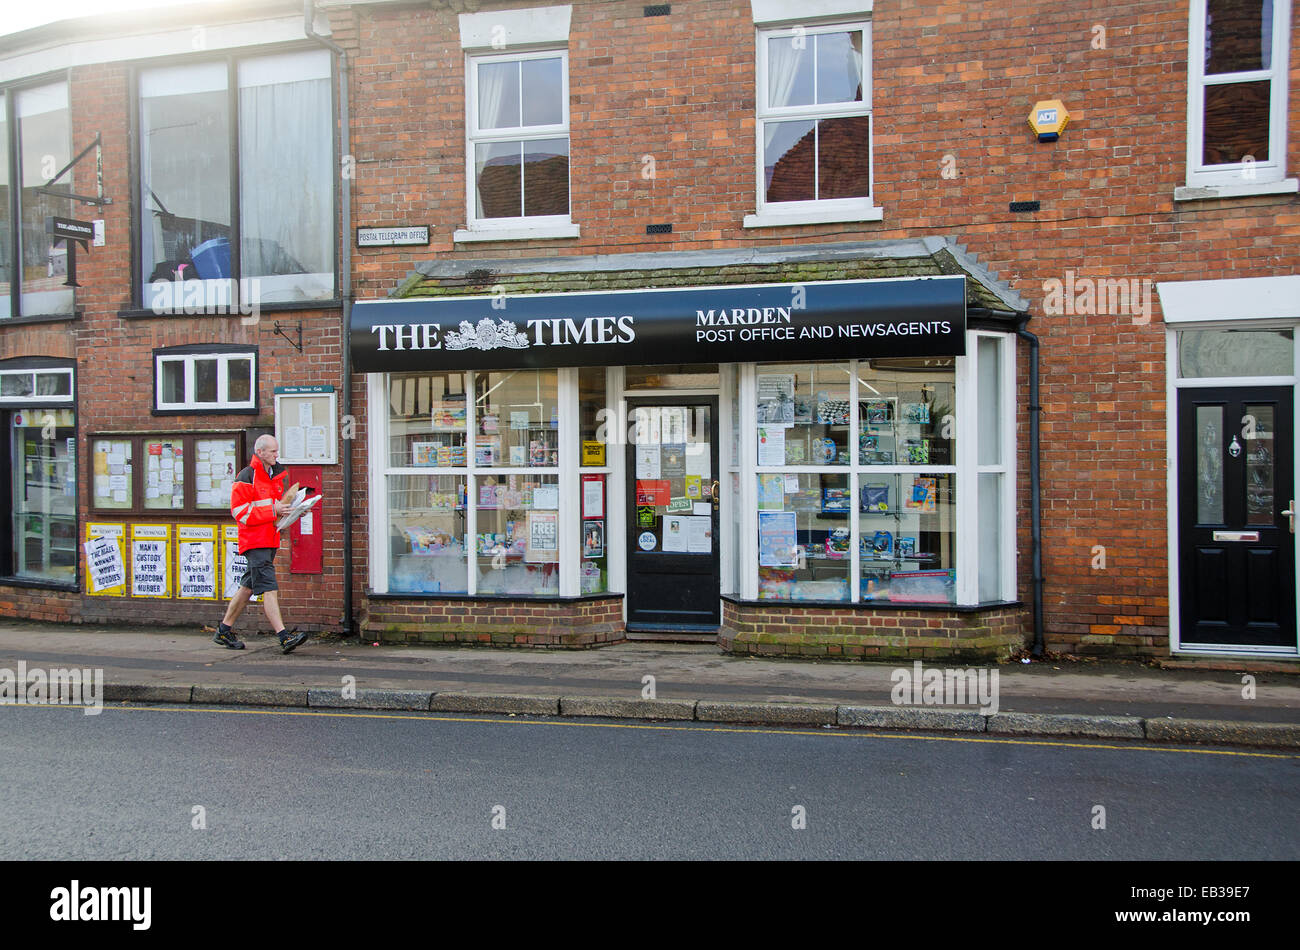 Kent, UK. 25th Nov, 2014. The Natwest Bank Banch in Marden, Kent is closing with effect today, 25 November2014. - Stock Image